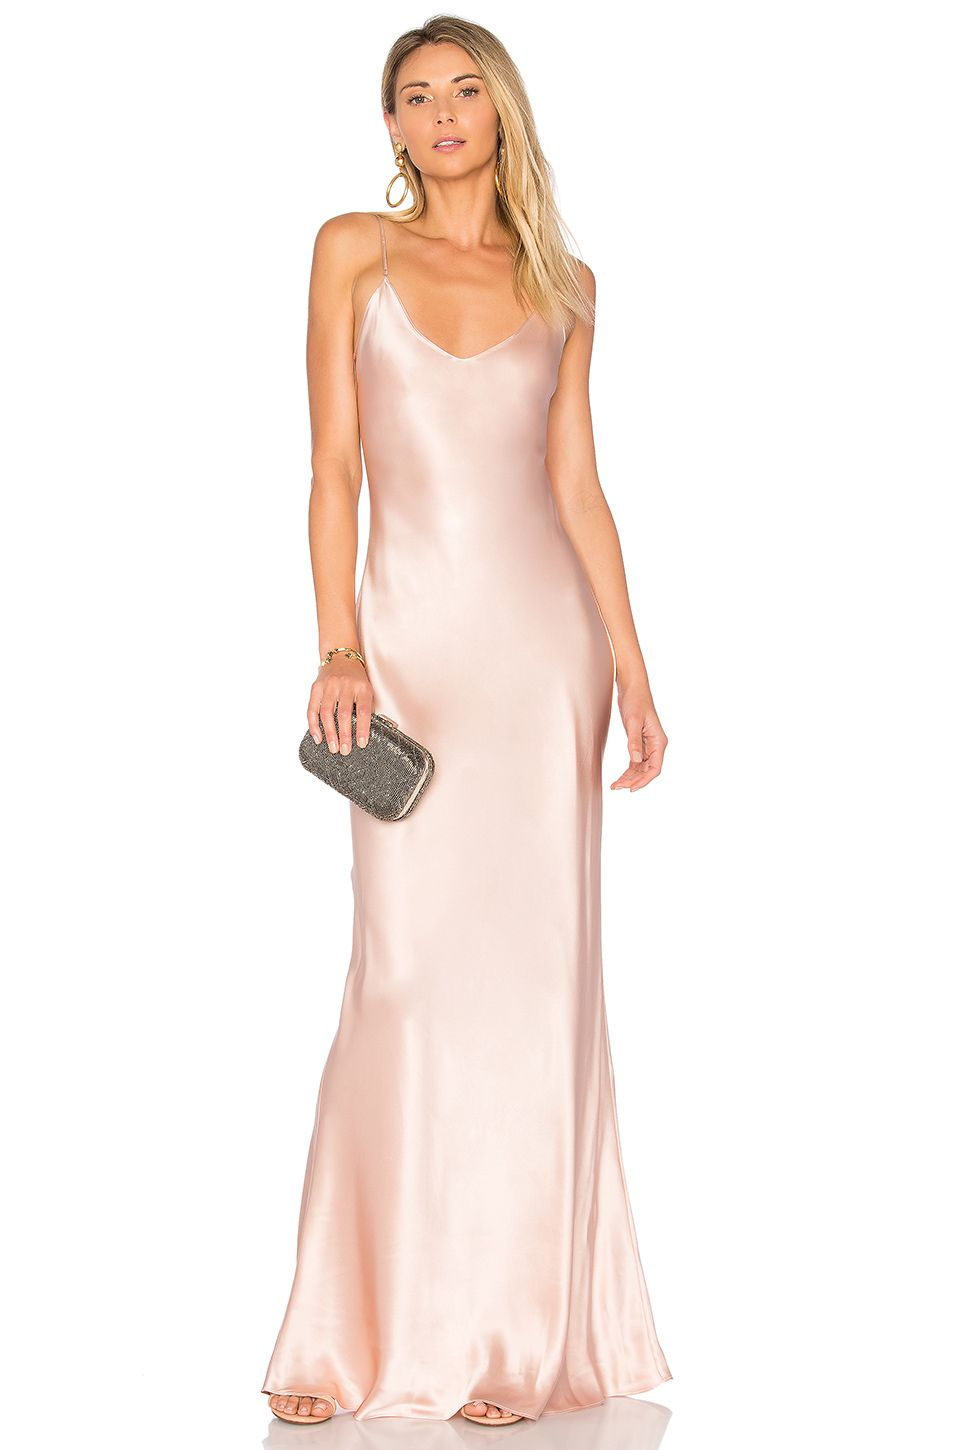 Theperfext sarah dress in pink revolve bridesmaid dresses shop for theperfext sarah dress in pink at revolve free day shipping and returns 30 day price match guarantee ombrellifo Images